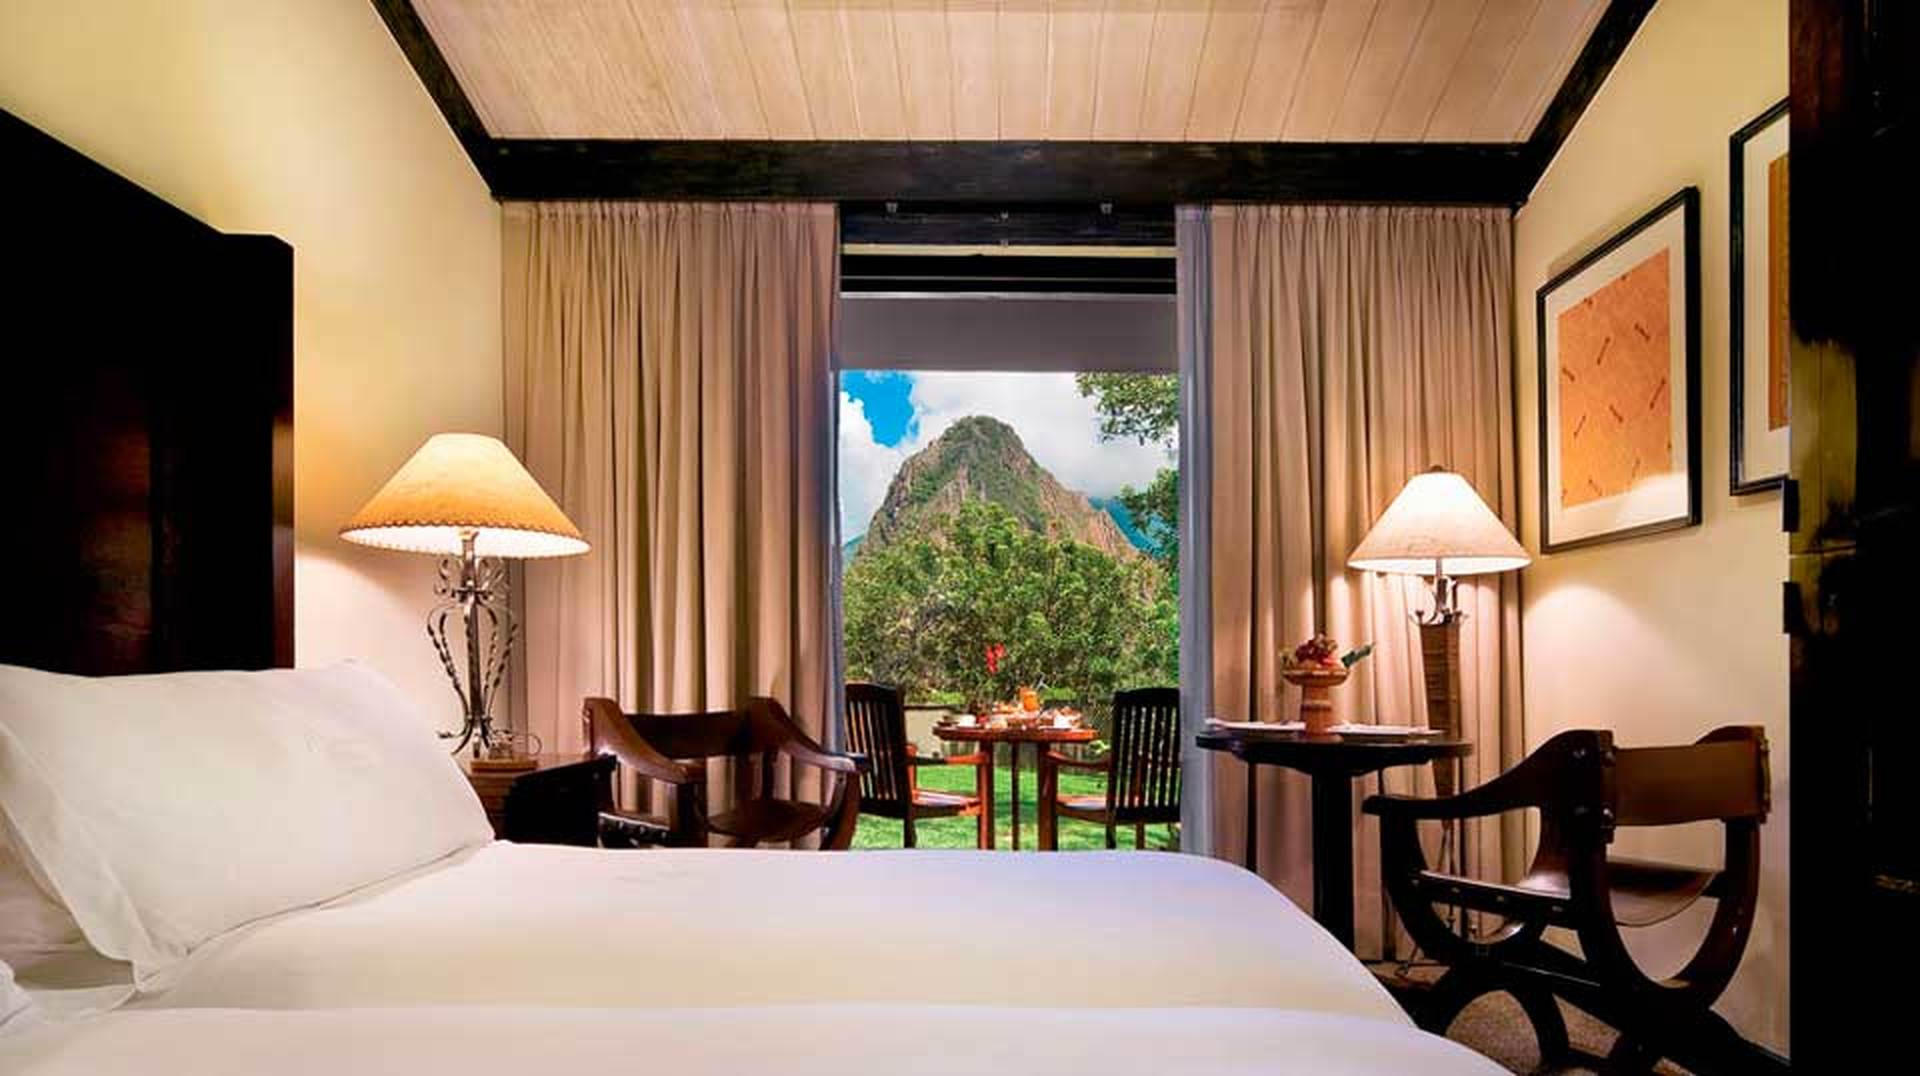 belmond-sanctuary-lodge-machu-picchu.jpg